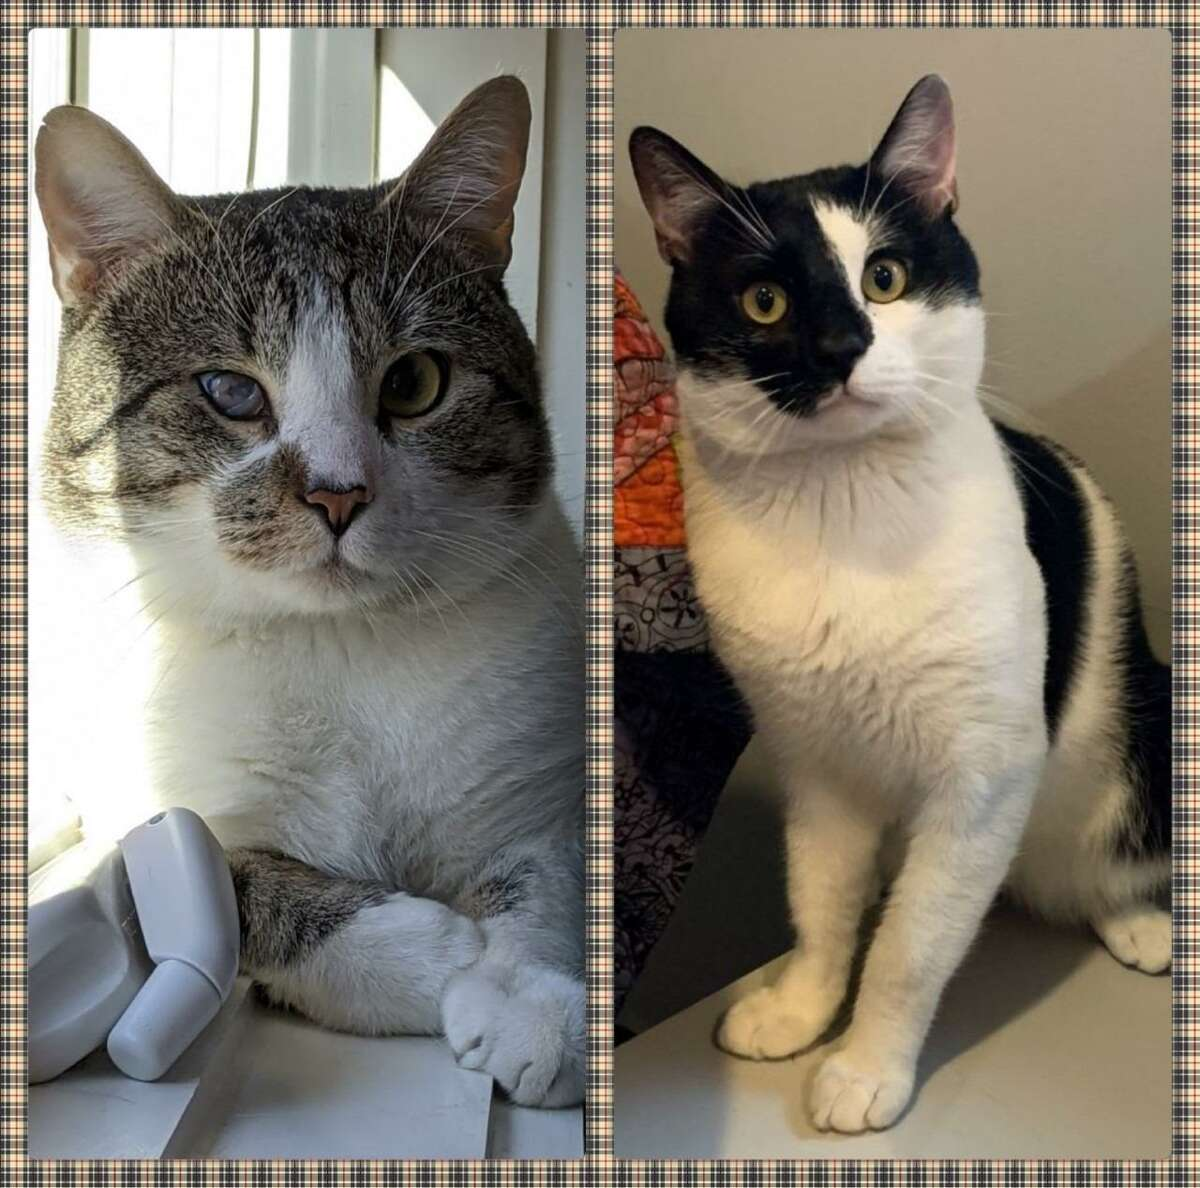 Badger, and Moo, two cats, are more than ready to meet their new family following each of the cats stay at the ROAR Donofrio Animal Shelter in Ridgefield. They can be met by calling the shelter at (203) 438-0158.